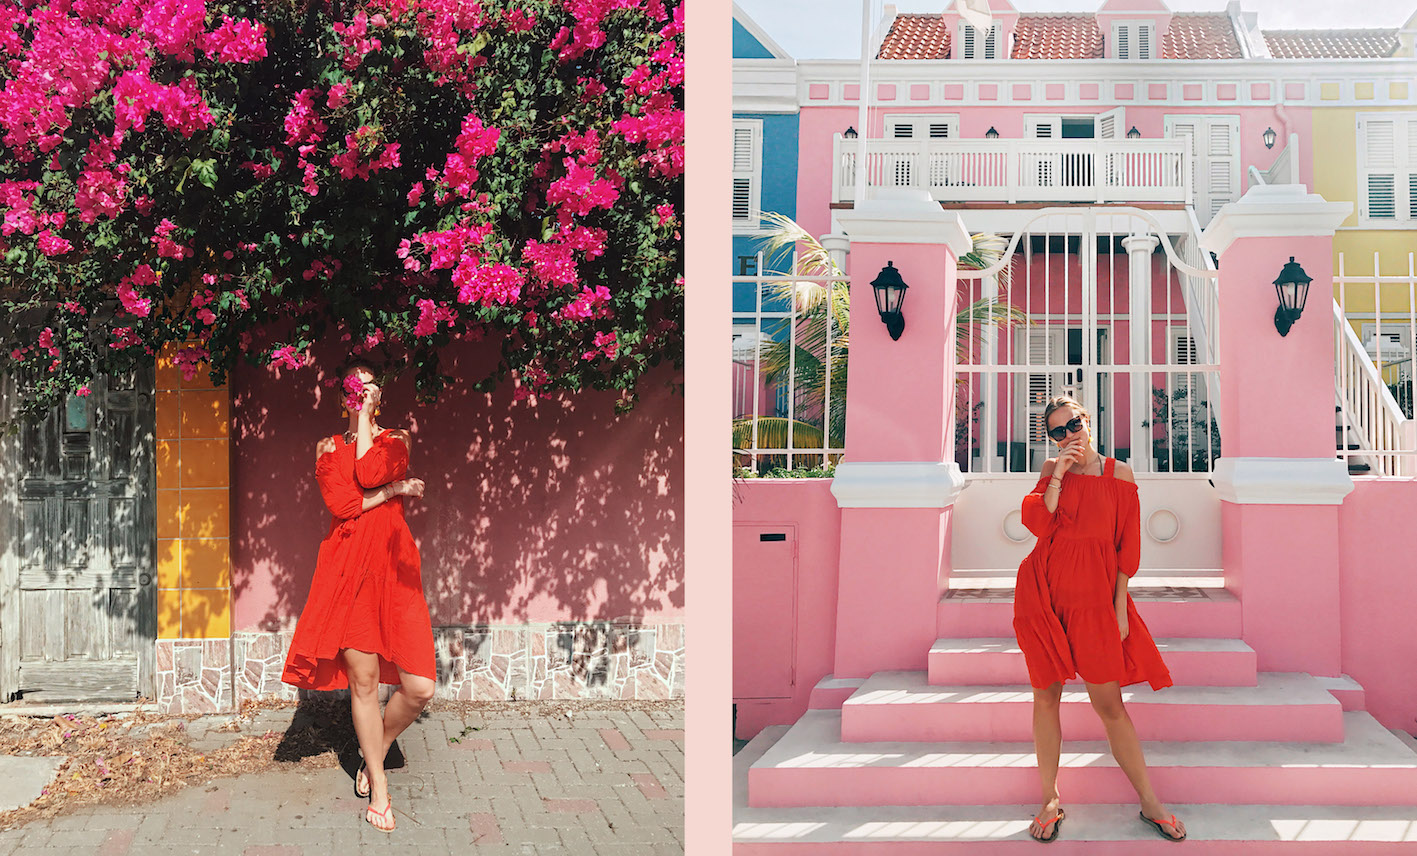 Floortjeloves, holiday, vacation, curacao, curacao instagram recap, instagram, instagram recap, travels, outfits, style, travel, curaçao